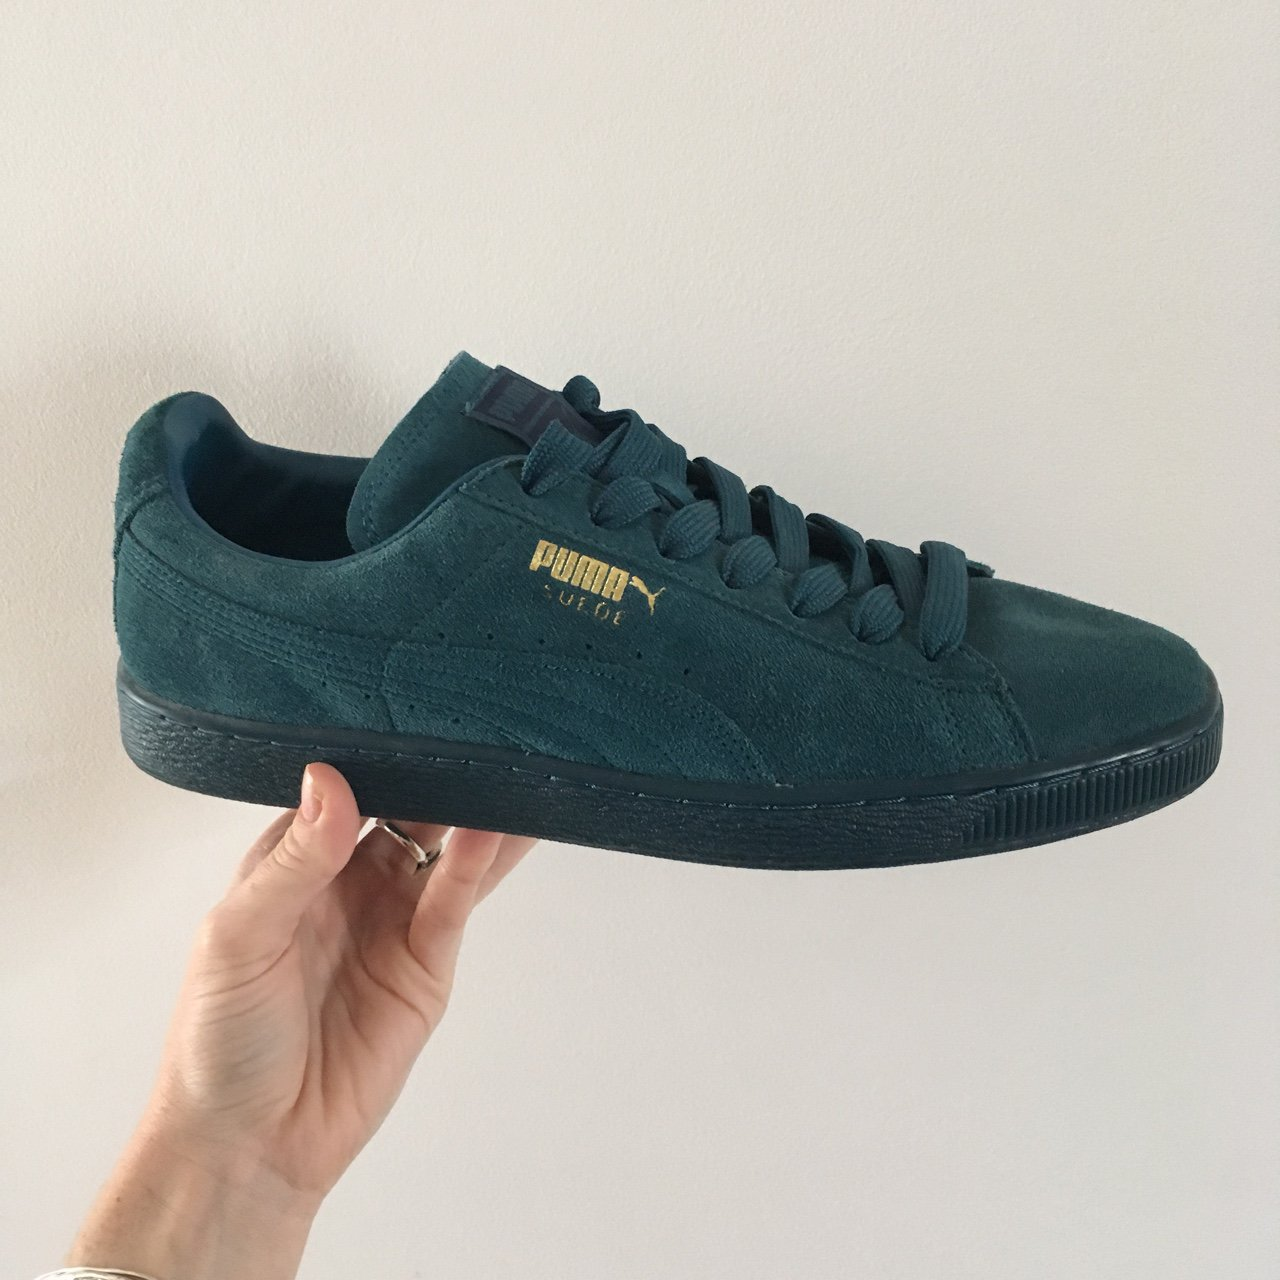 Puma suede iced teal size 11. Selling for my boyfriend 429f37cad